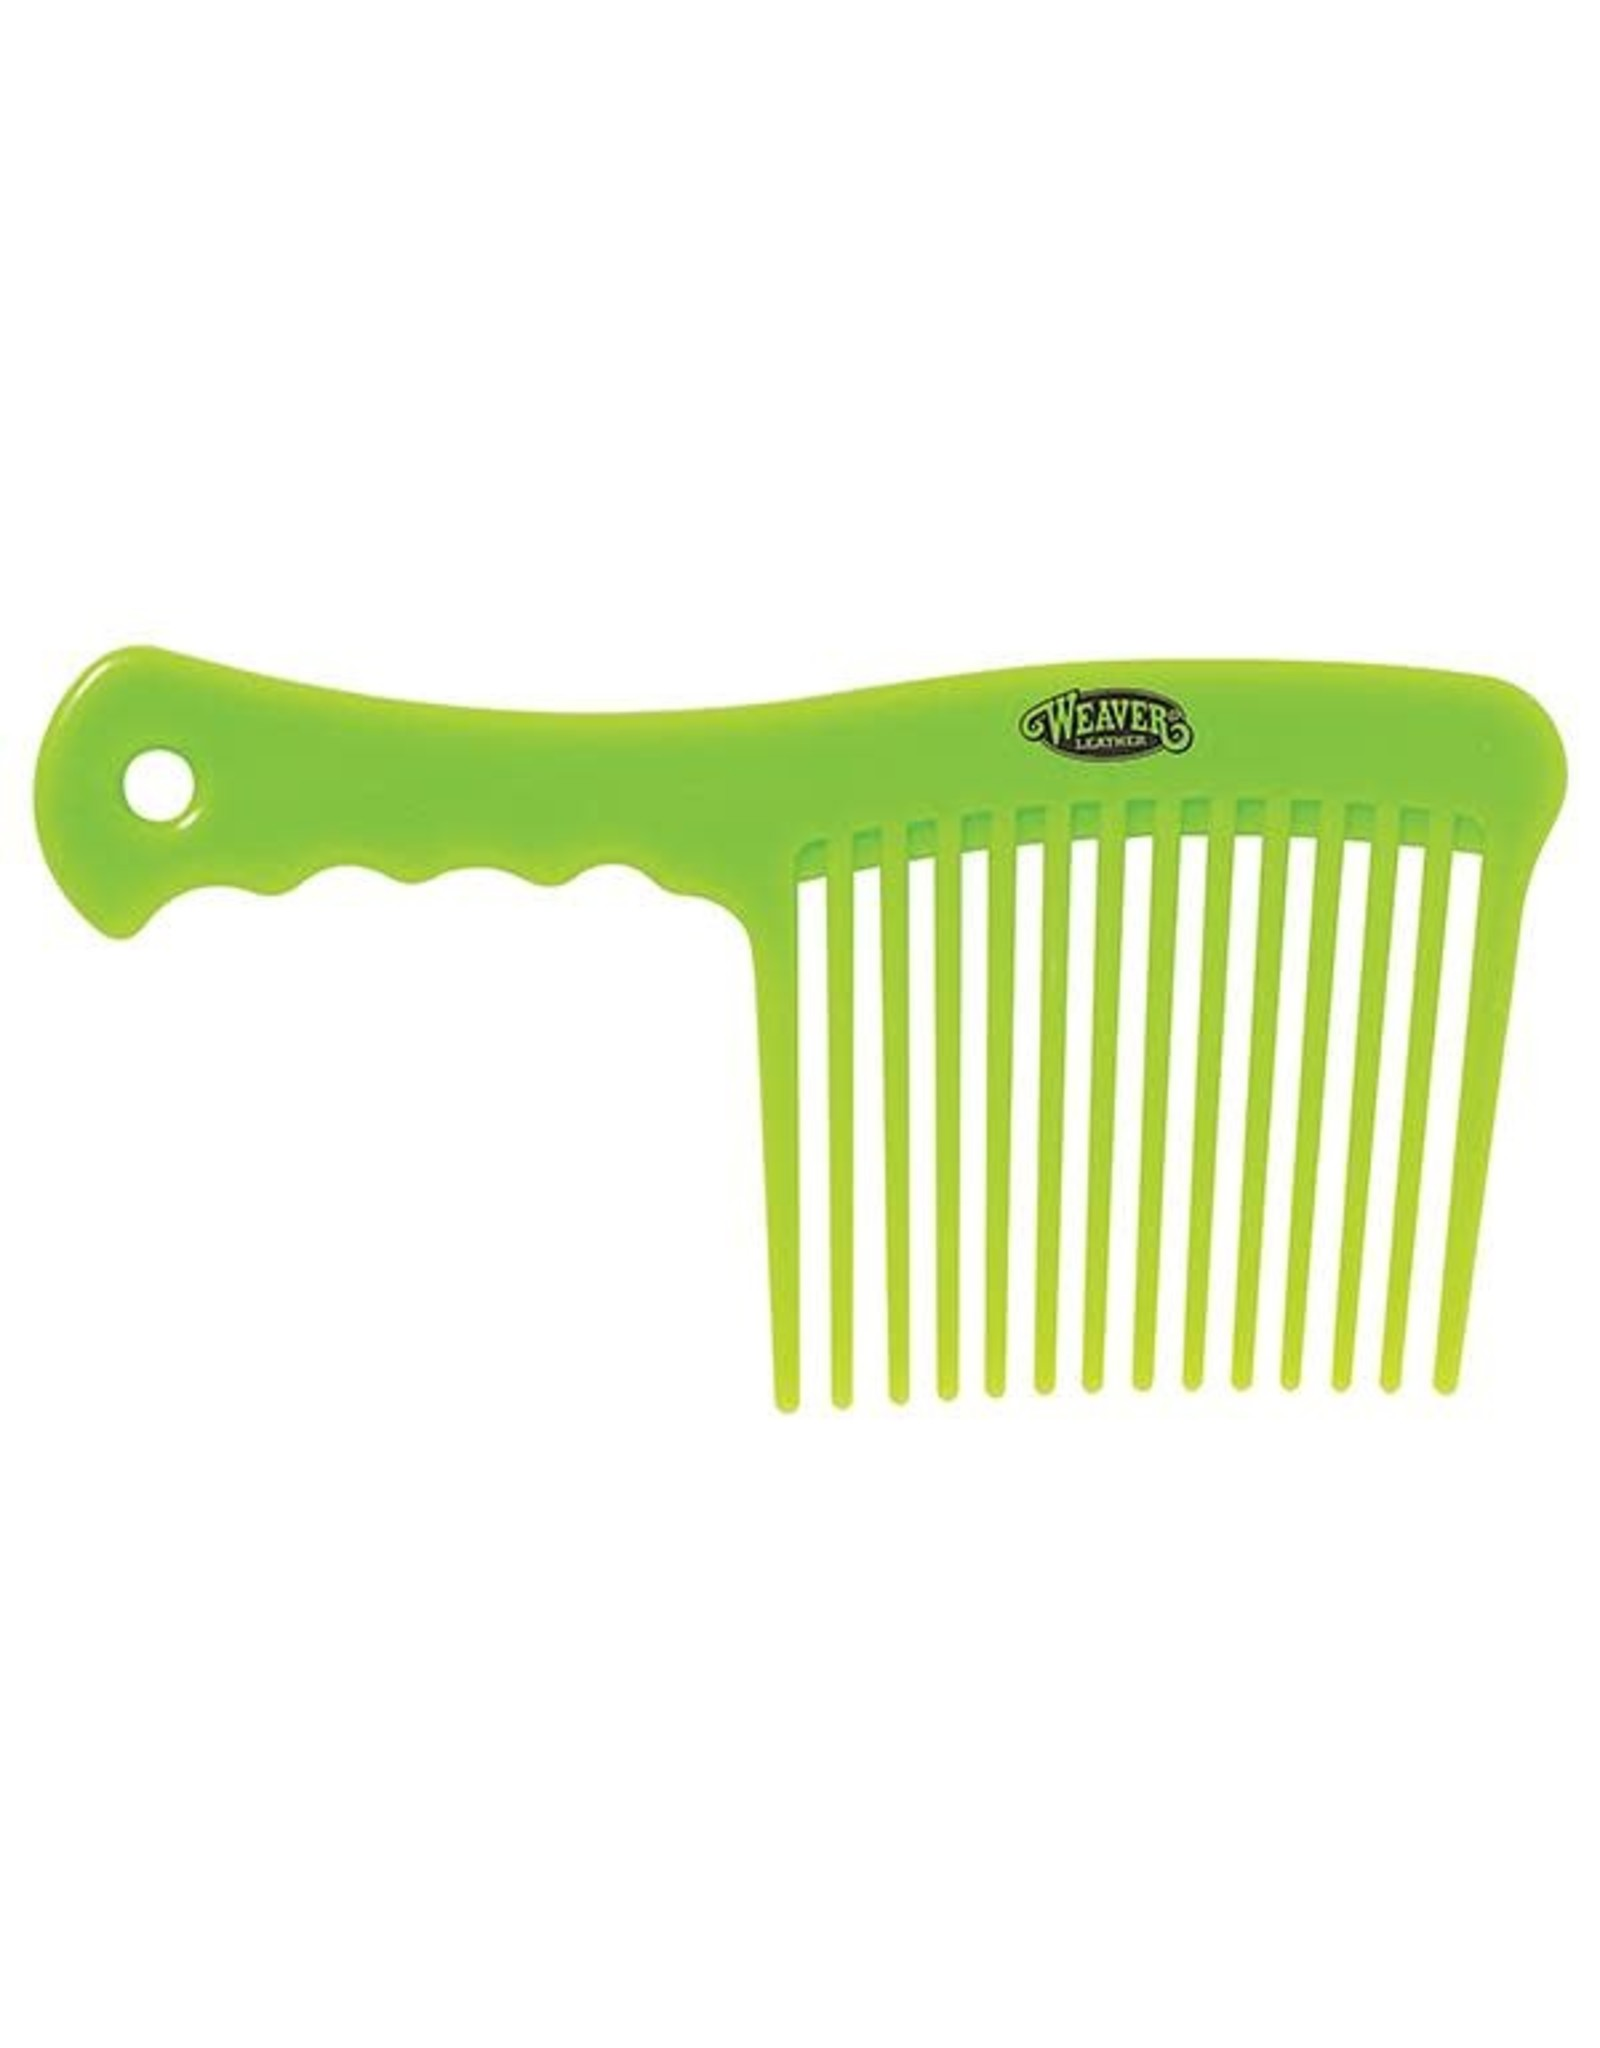 Weaver Comb Long Tooth